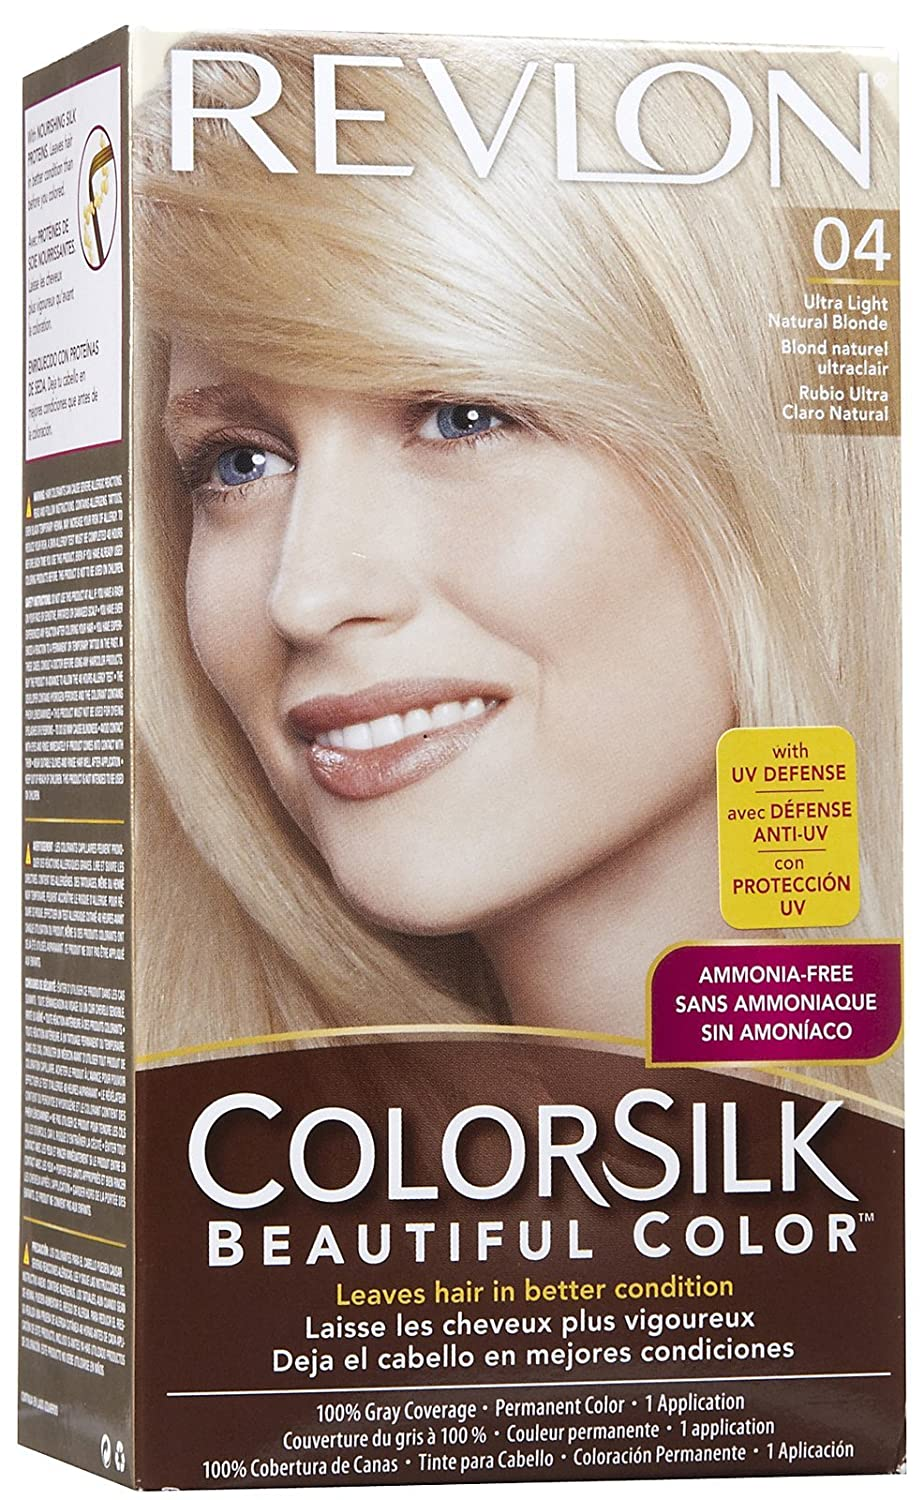 Revlon Colorsilk Haircolor Light natural Blonde: Amazon.co.uk ...